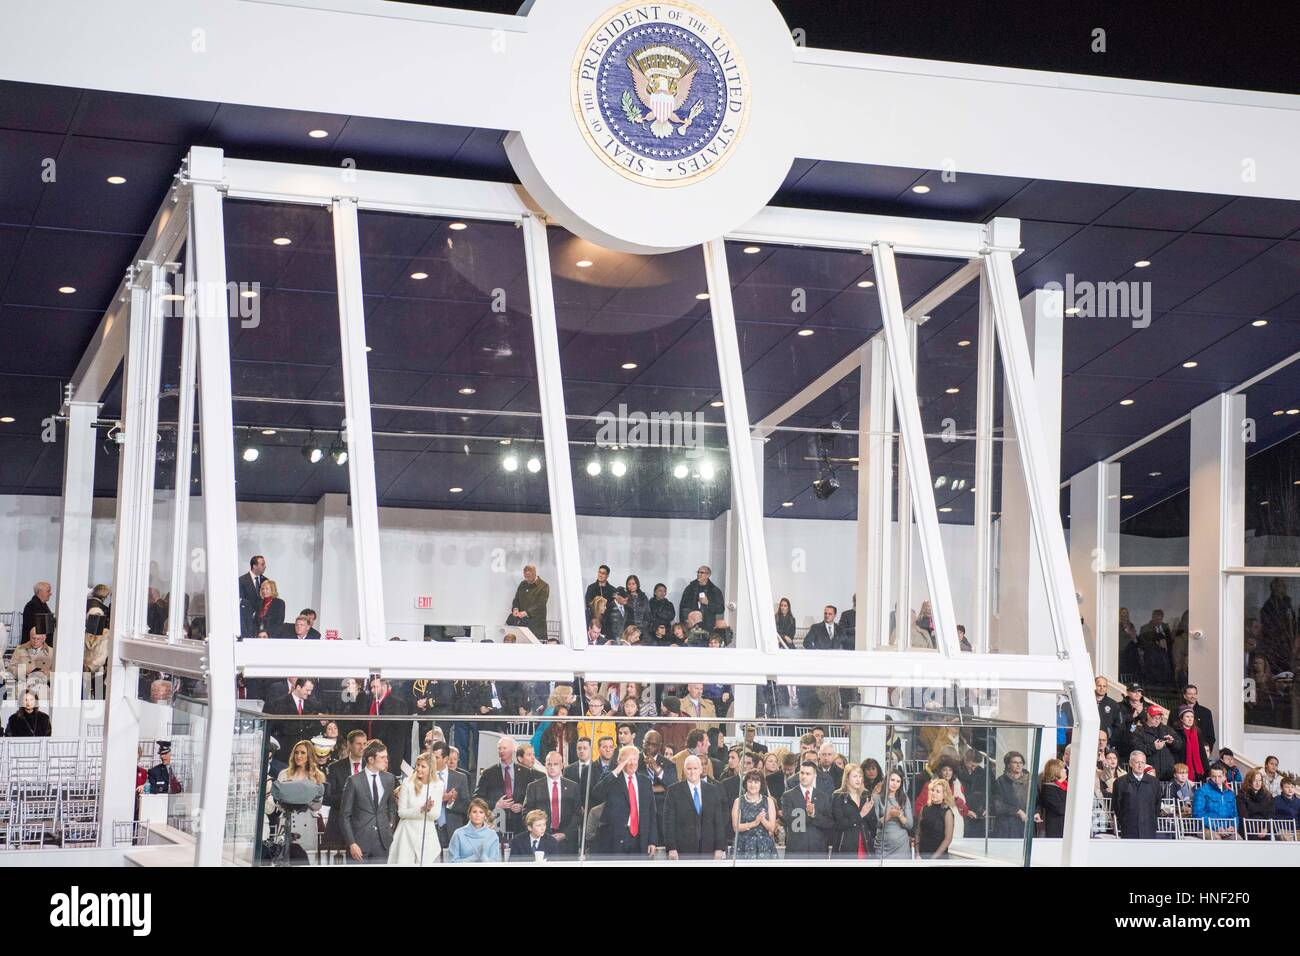 U.S. President Donald Trump and Vice President Mike Pence observe the 58th Presidential Inauguration Parade from - Stock Image